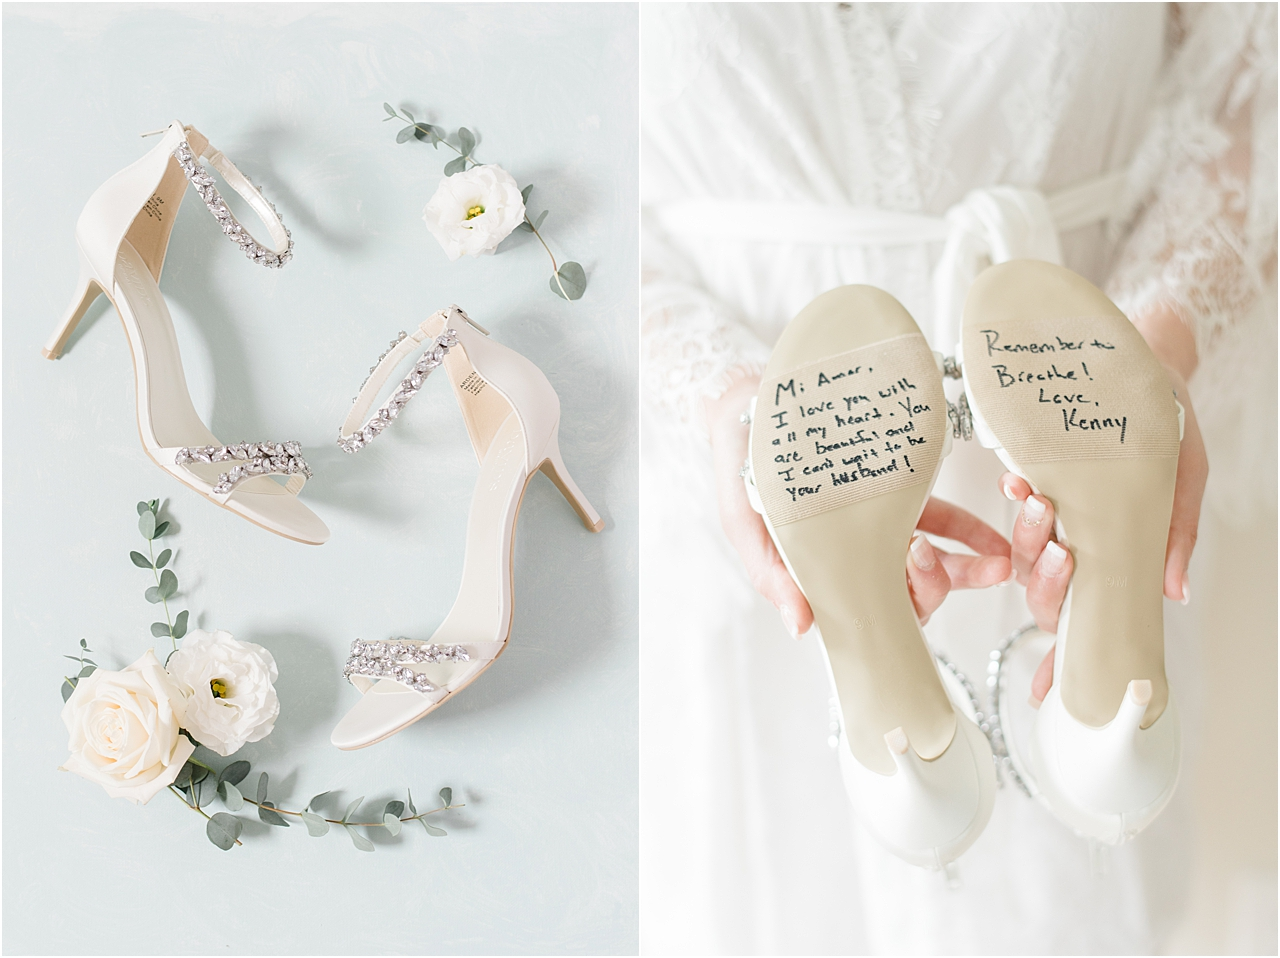 Bride's shoes with groom's message on bottom.jpg